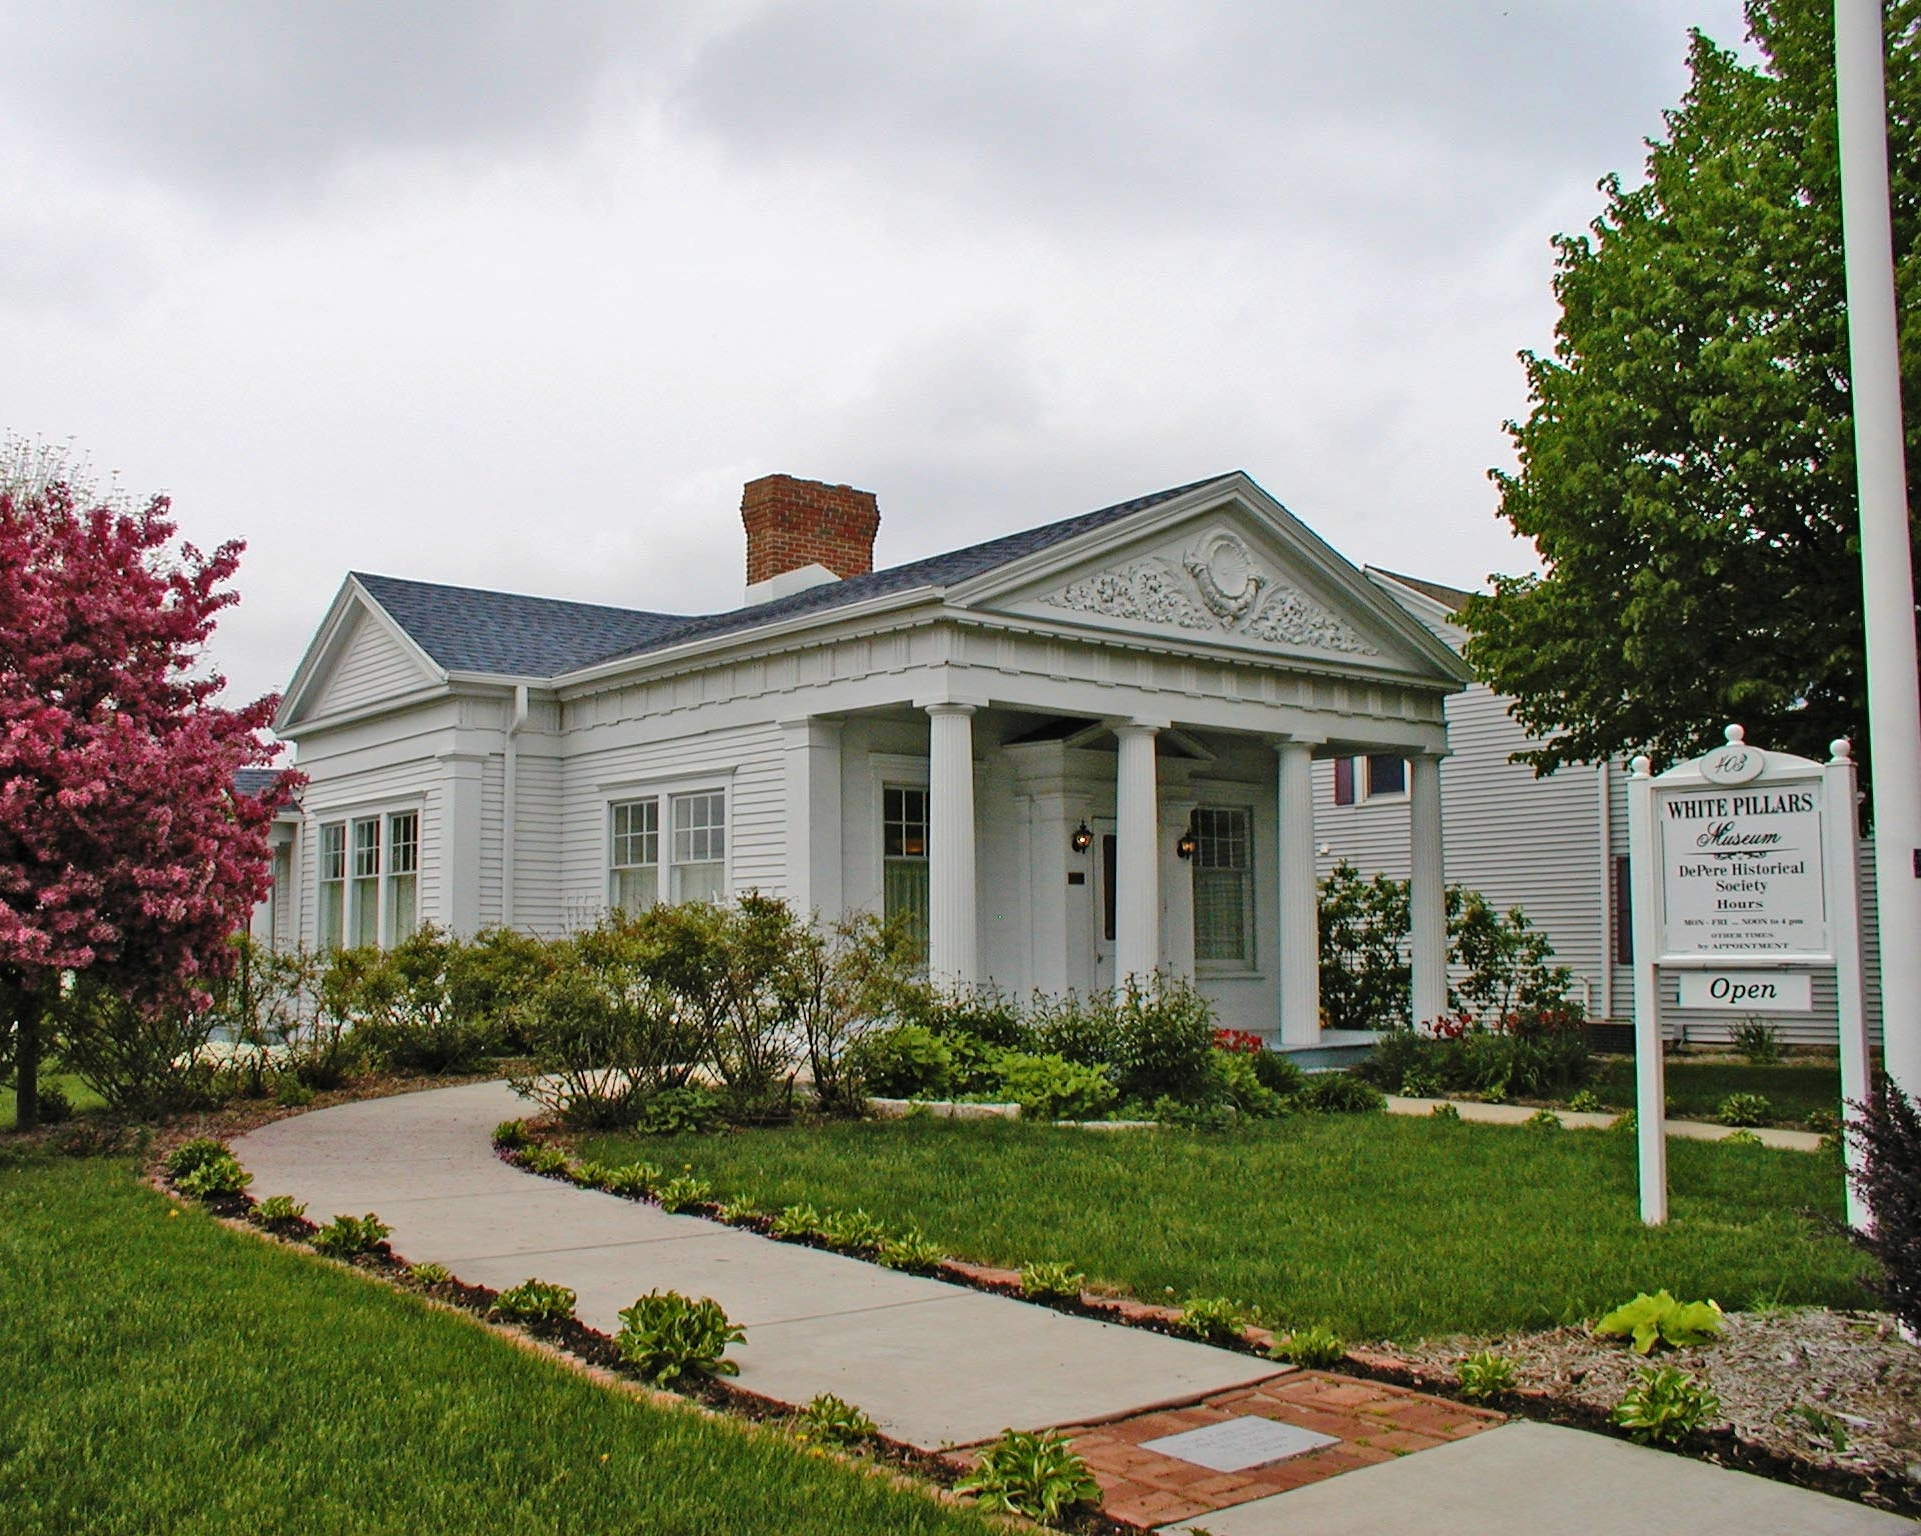 The De Pere Historical Society's White Pillars Museum is housed in an 1836 Greek Revival building.